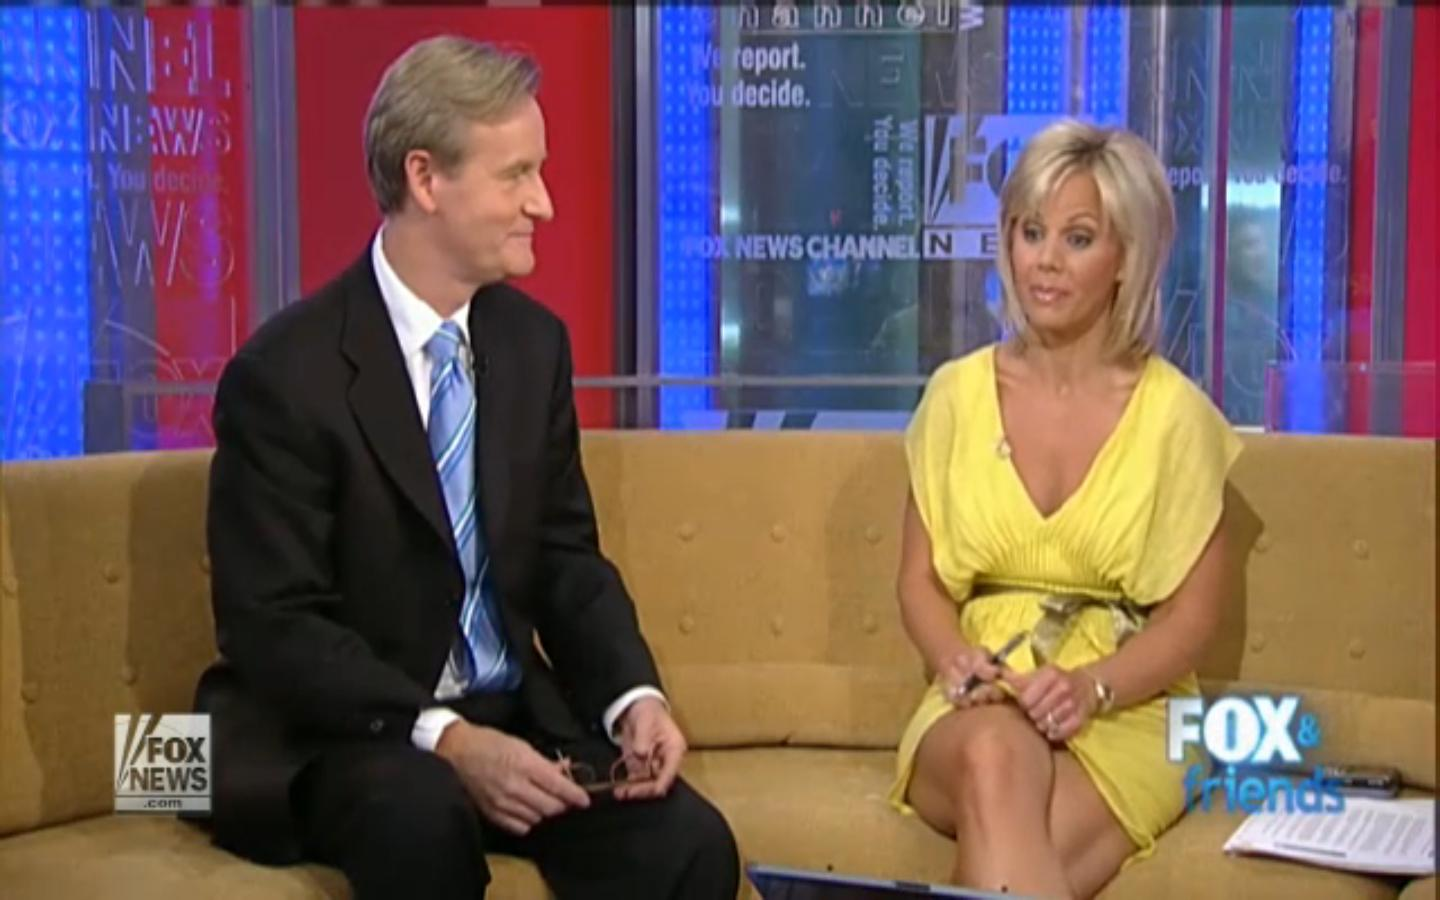 The famous foxnews gretchen carlson upskirt